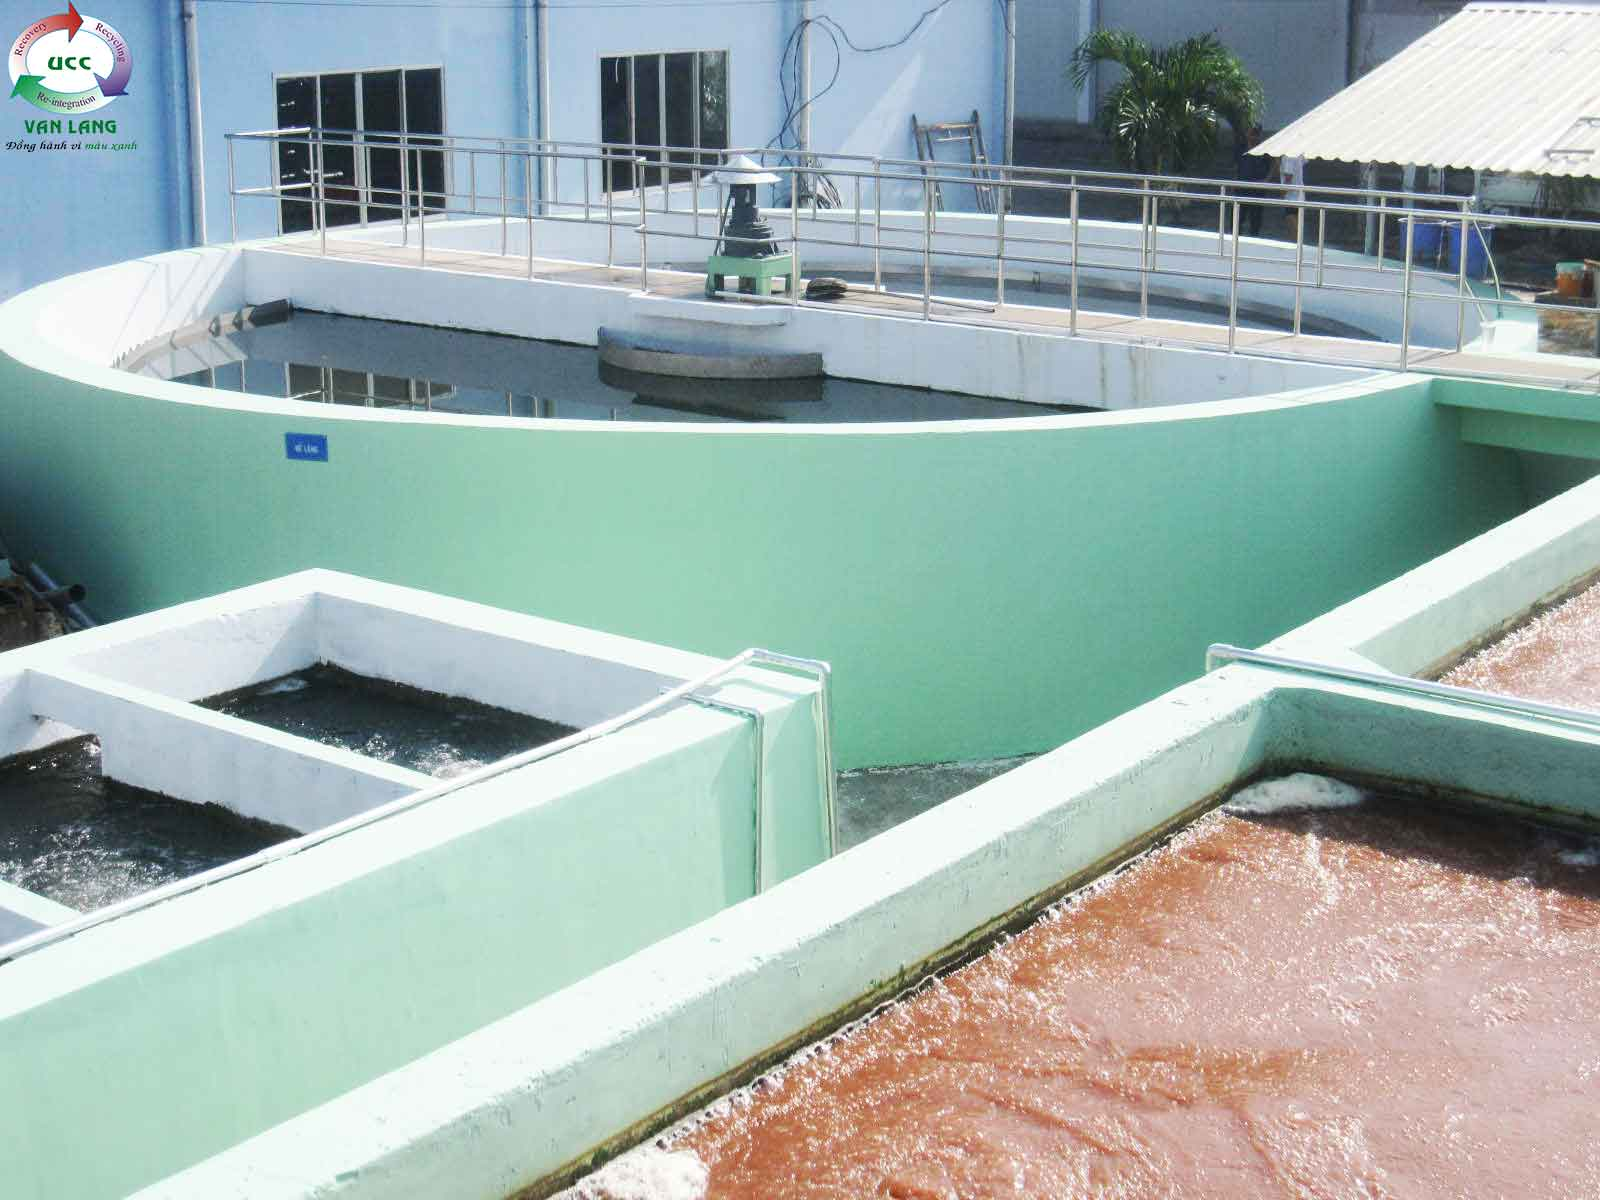 THE WASTEWATER TREATMENT PLANT OF GO DANG BEN TRE SEAFOOD FACTORY